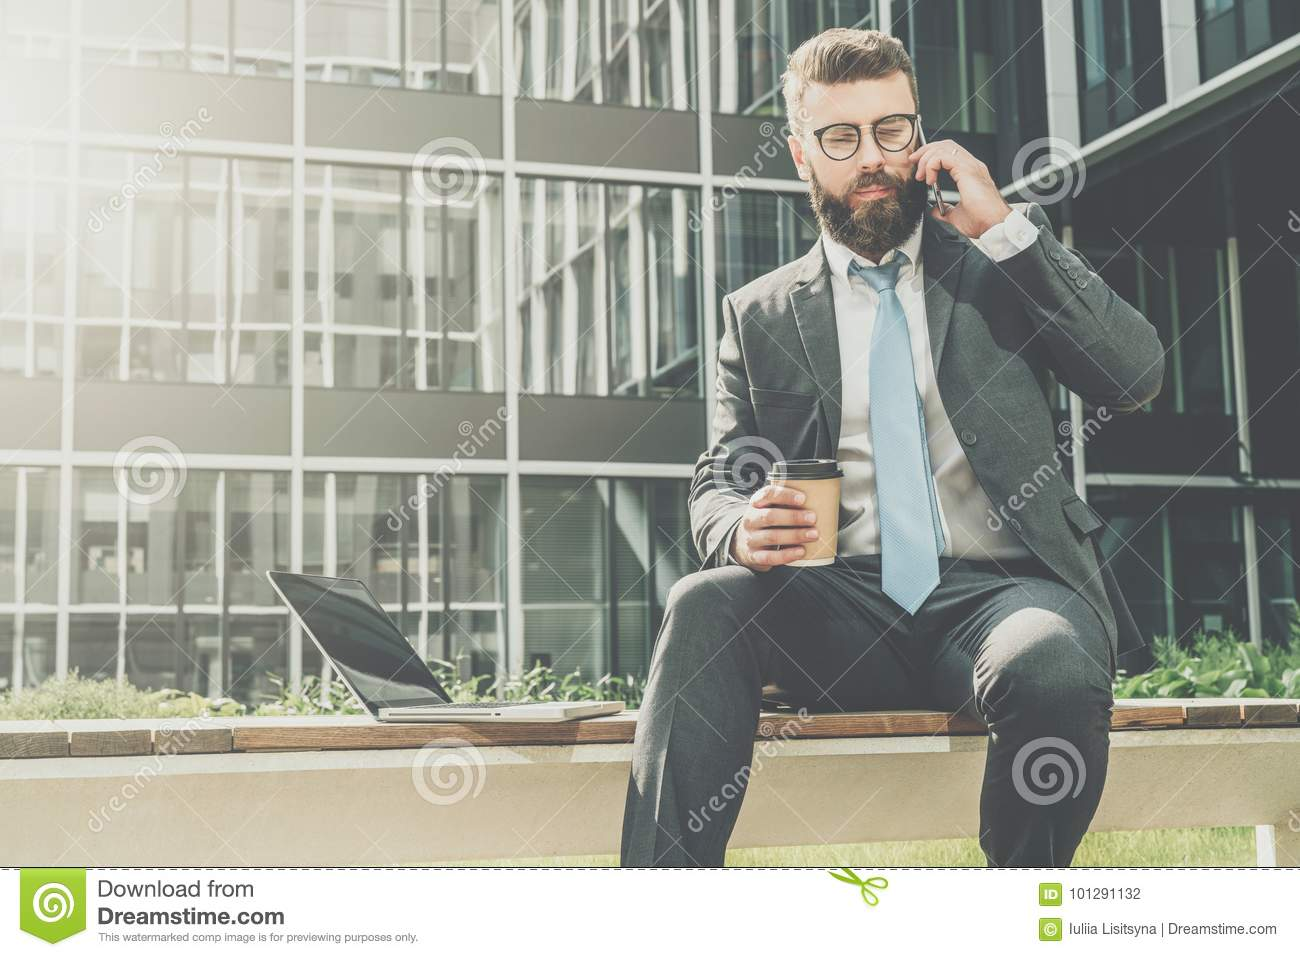 Businessman in suit and tie is sitting outside on bench,drinking coffee and talking on his cell phone.Nearby is laptop.